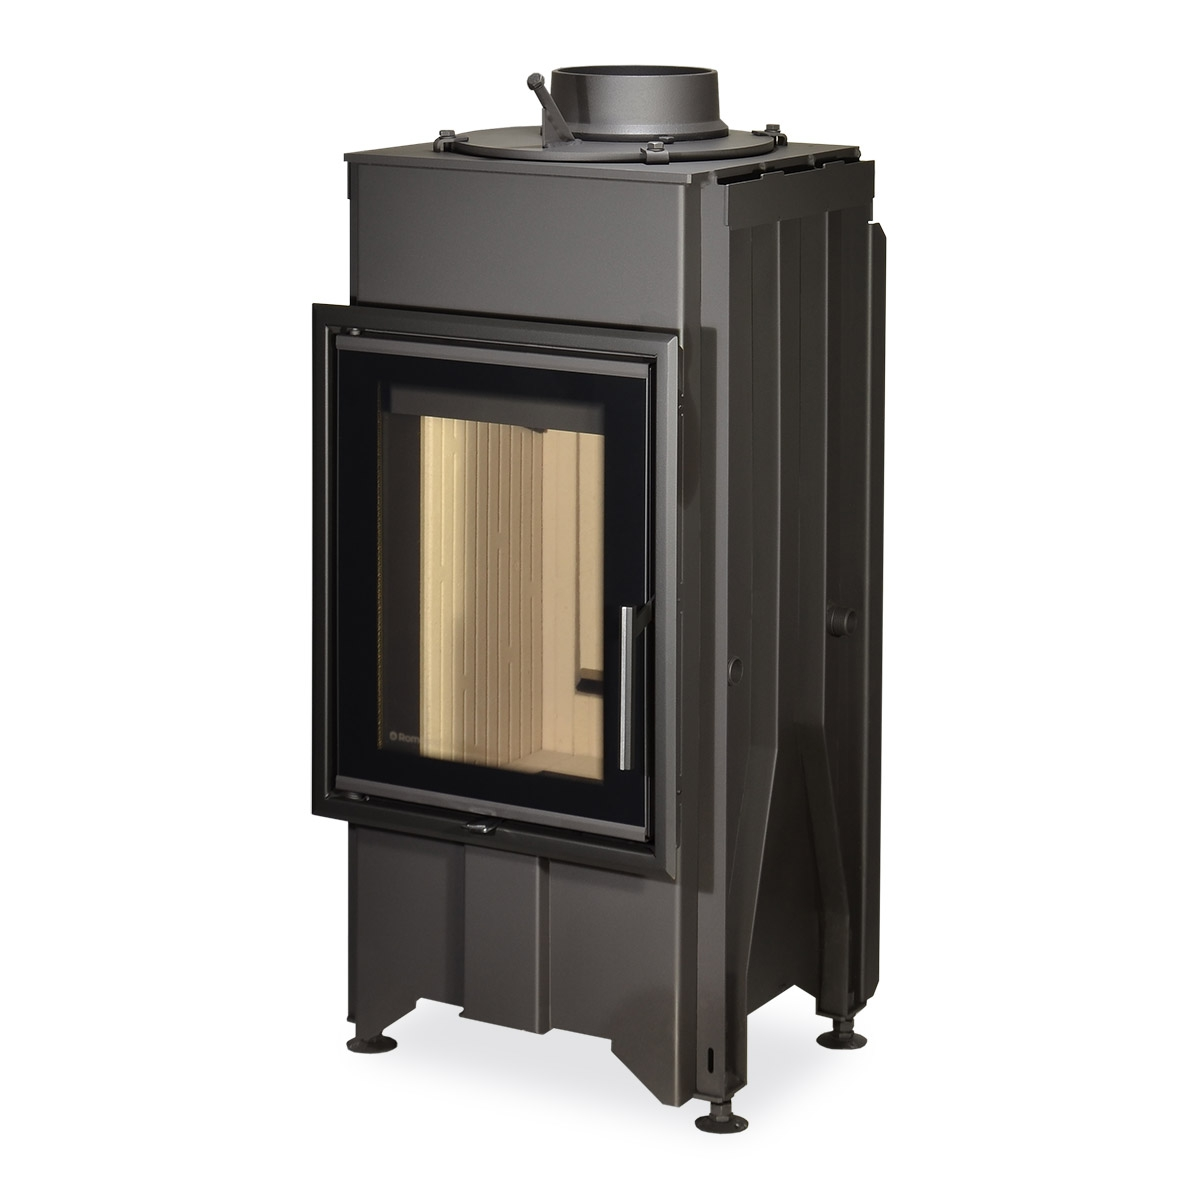 DYNAMIC B2G 44.55.01 - straight fireplace insert with back stoking and double glazing